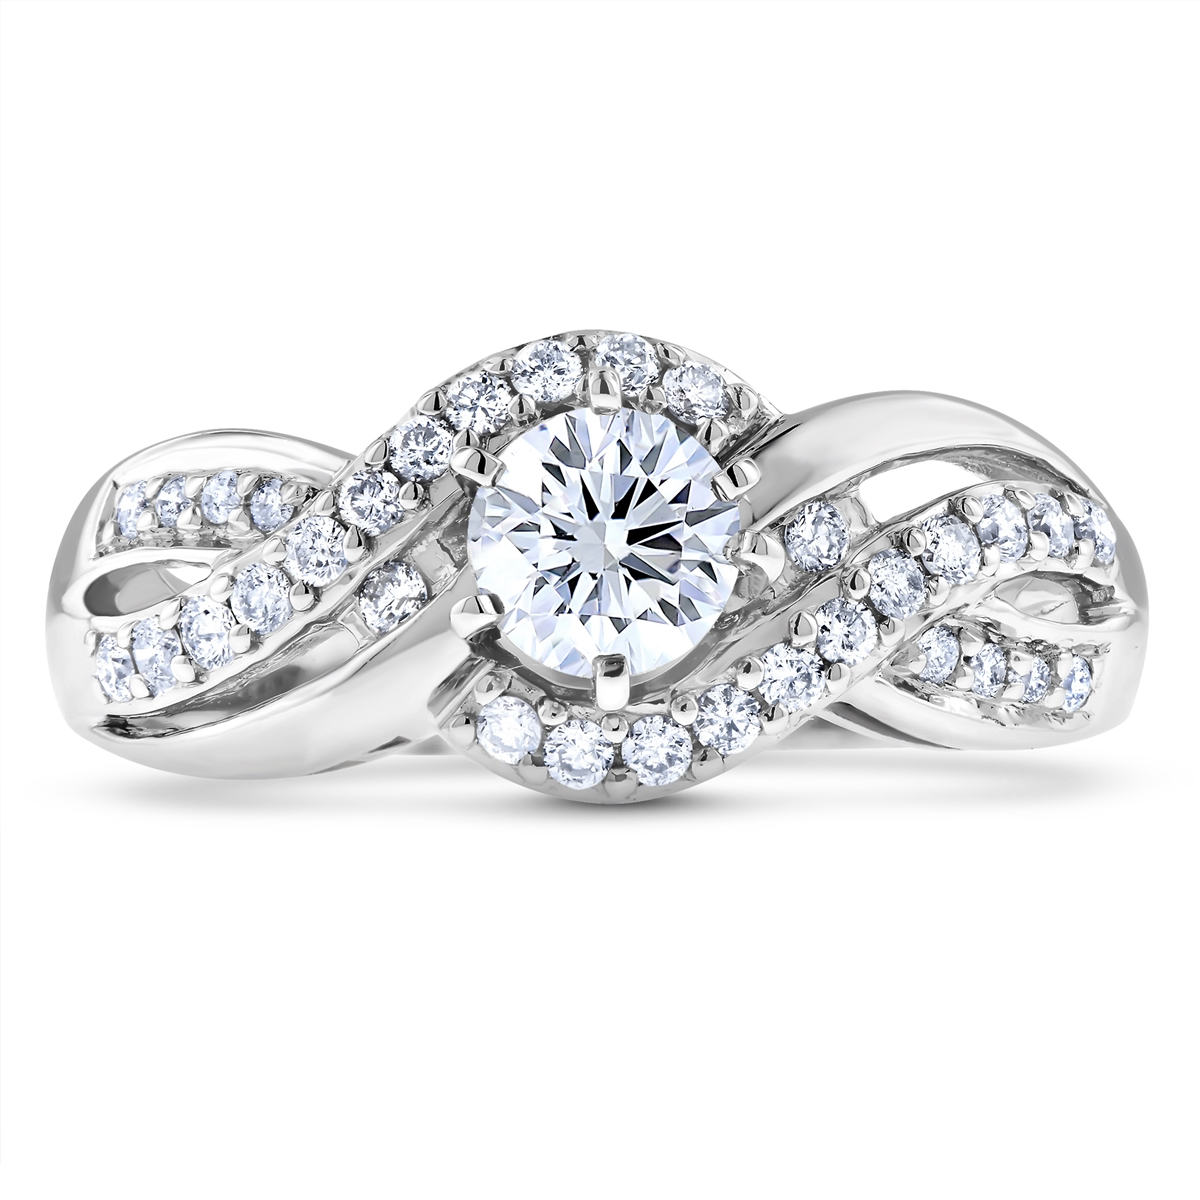 h ring twisted infinity setting i engagement halo in diamond round platinum carat si